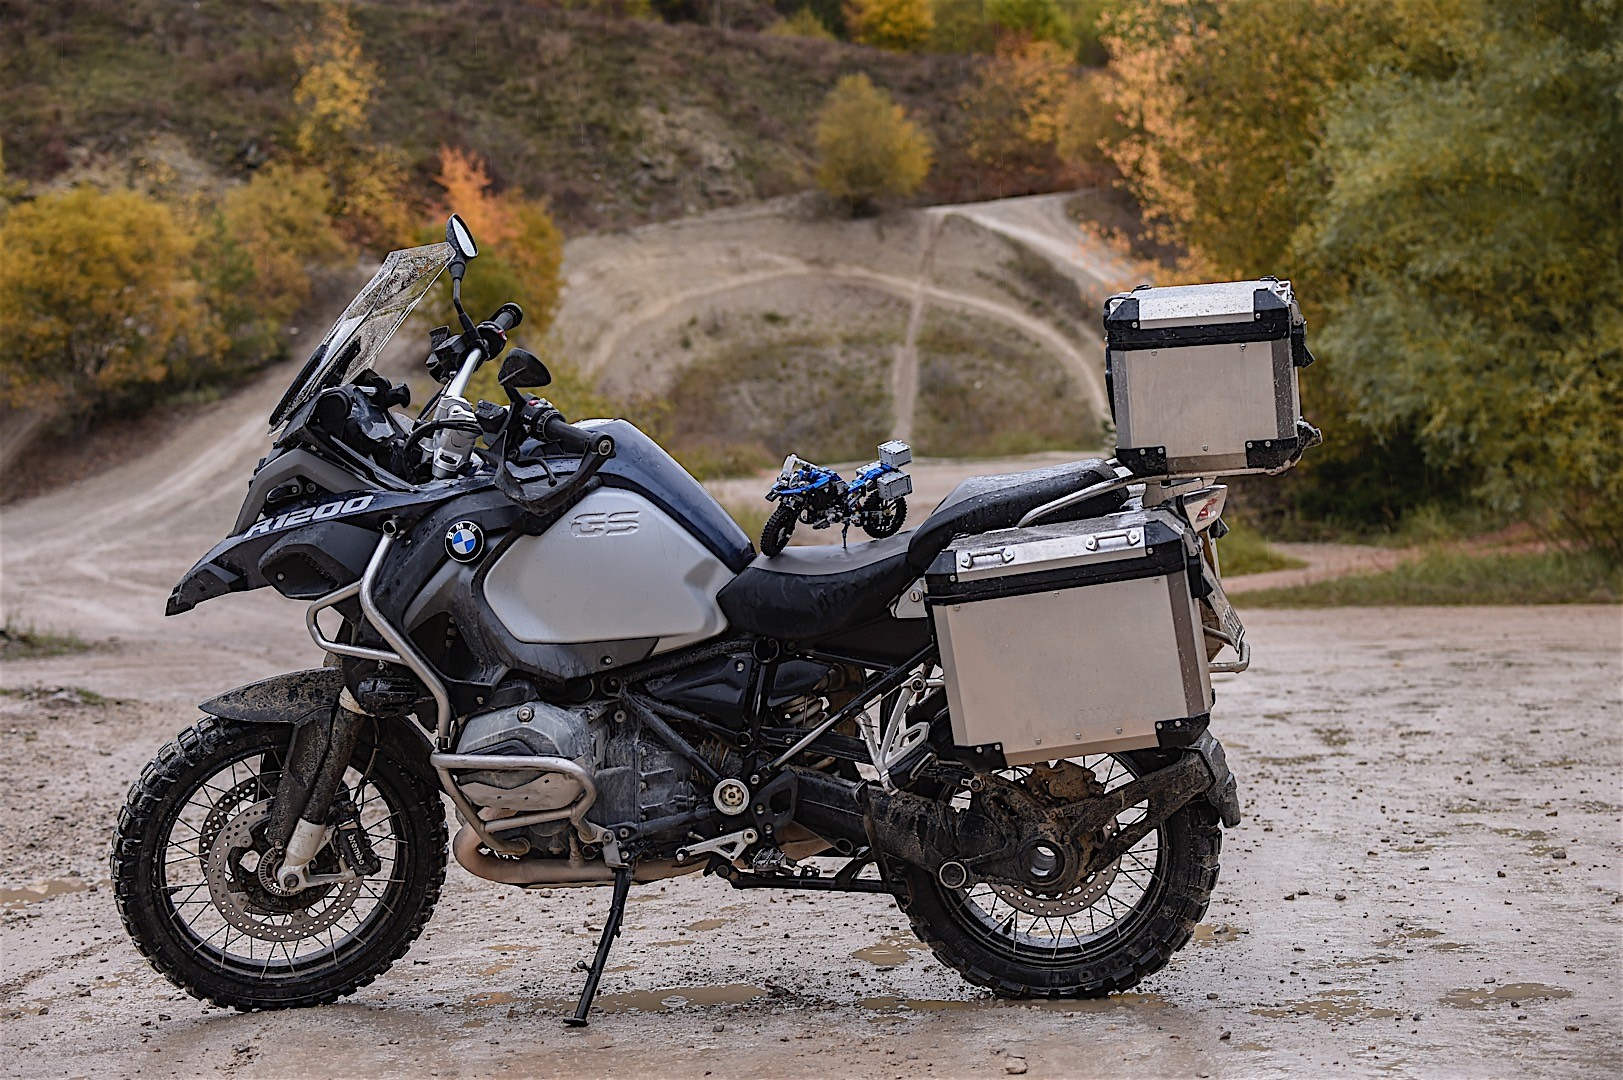 LEGO BMW R 1200 GS Adventure On Shelves Starting 2017 ...